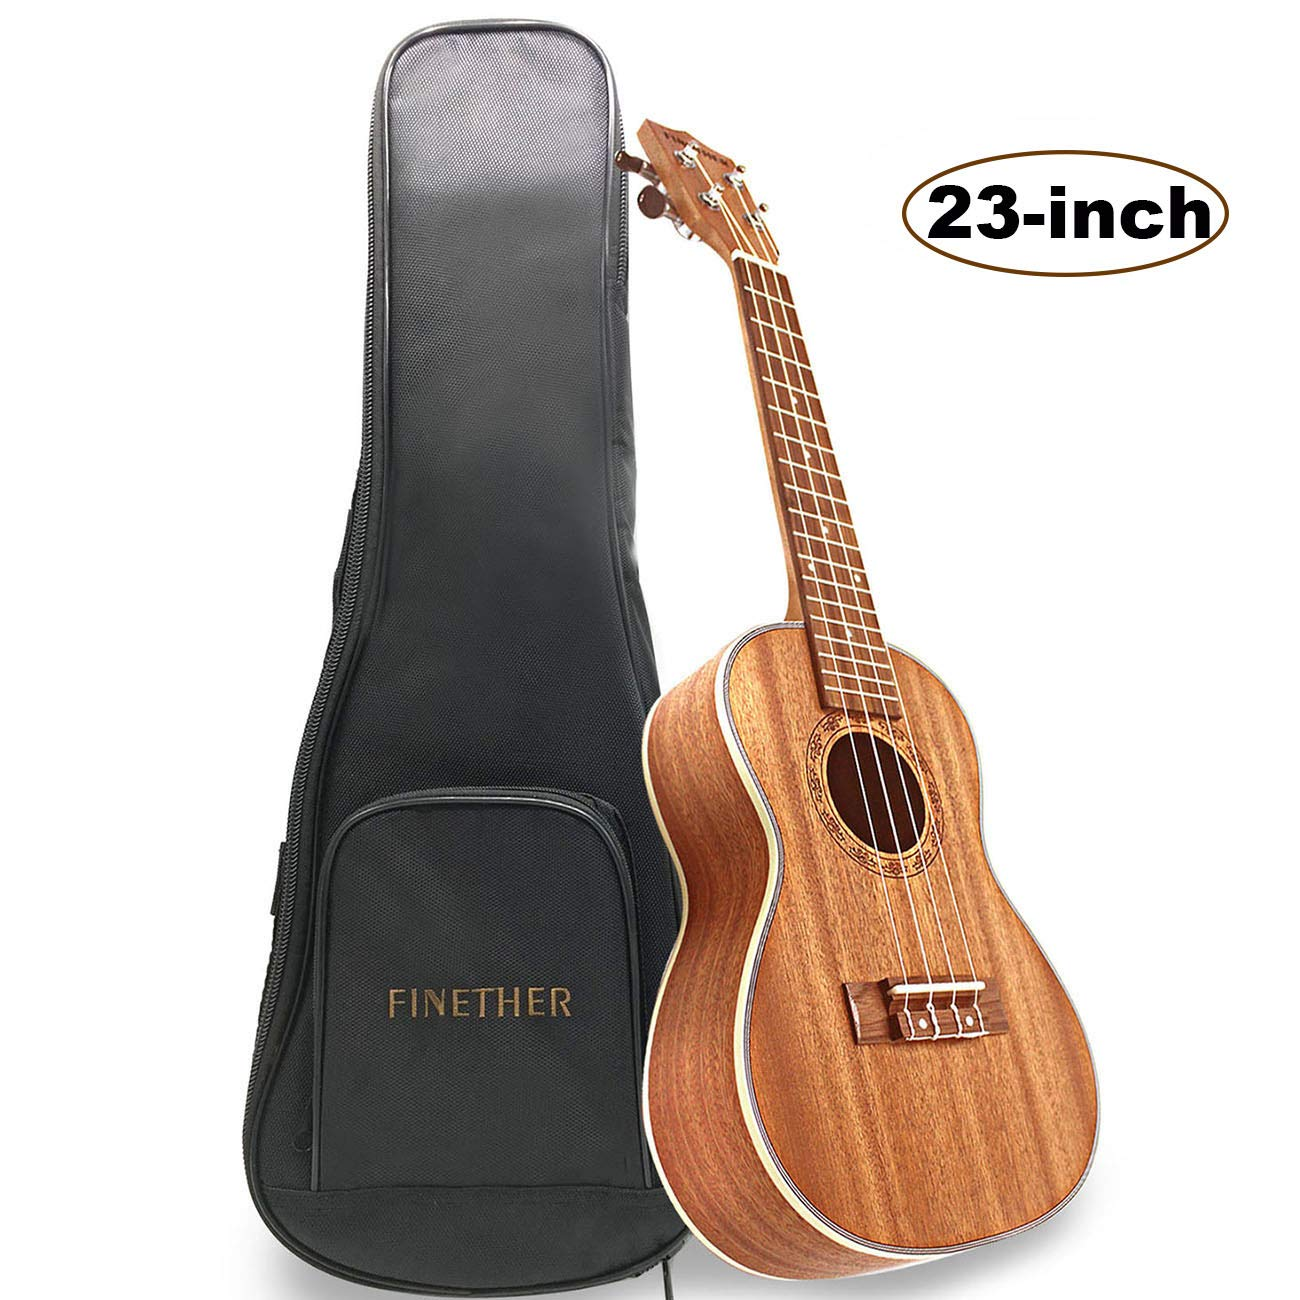 FINETHER 23-inch Ukulele Concert Uke Acoustic Mahogany Wood Small Guitar Hawaii 4 Stringed Instrument for Beginners